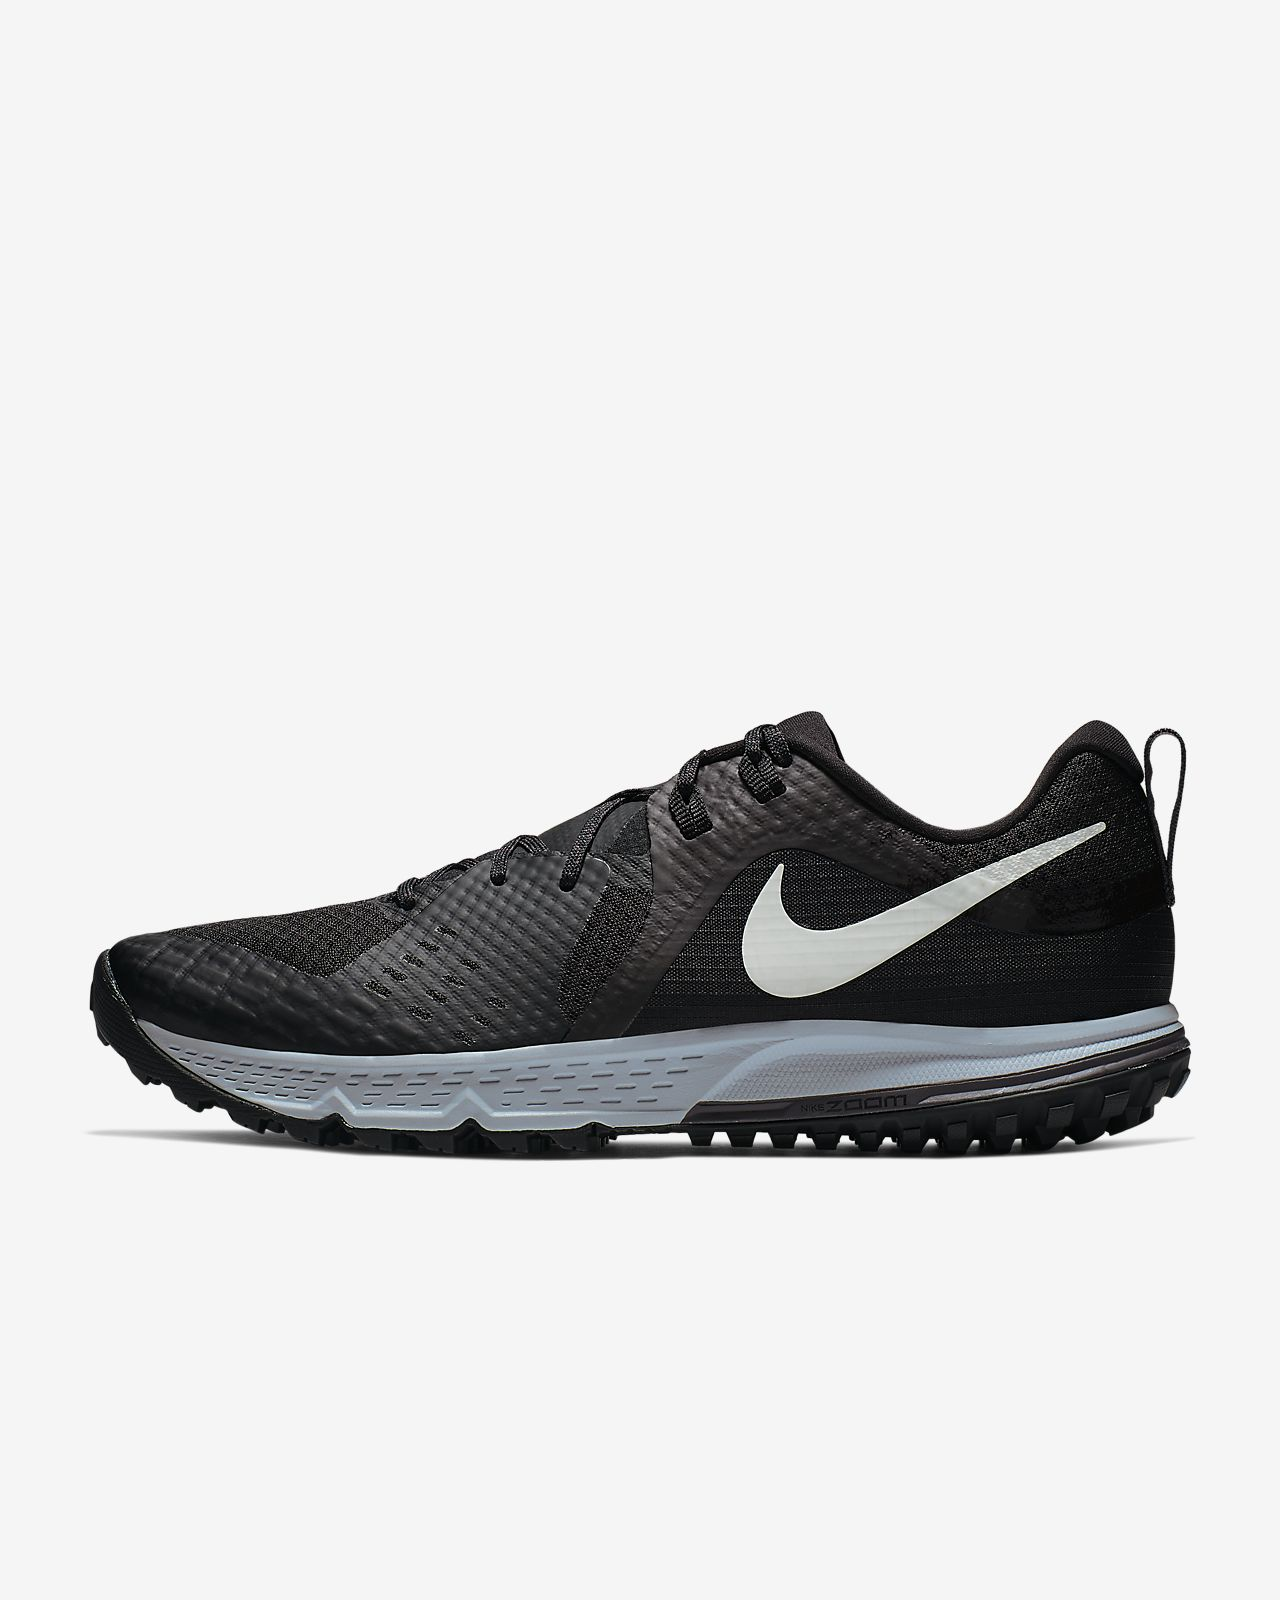 Chaussure de running Nike Air Zoom Wildhorse 5 pour Homme